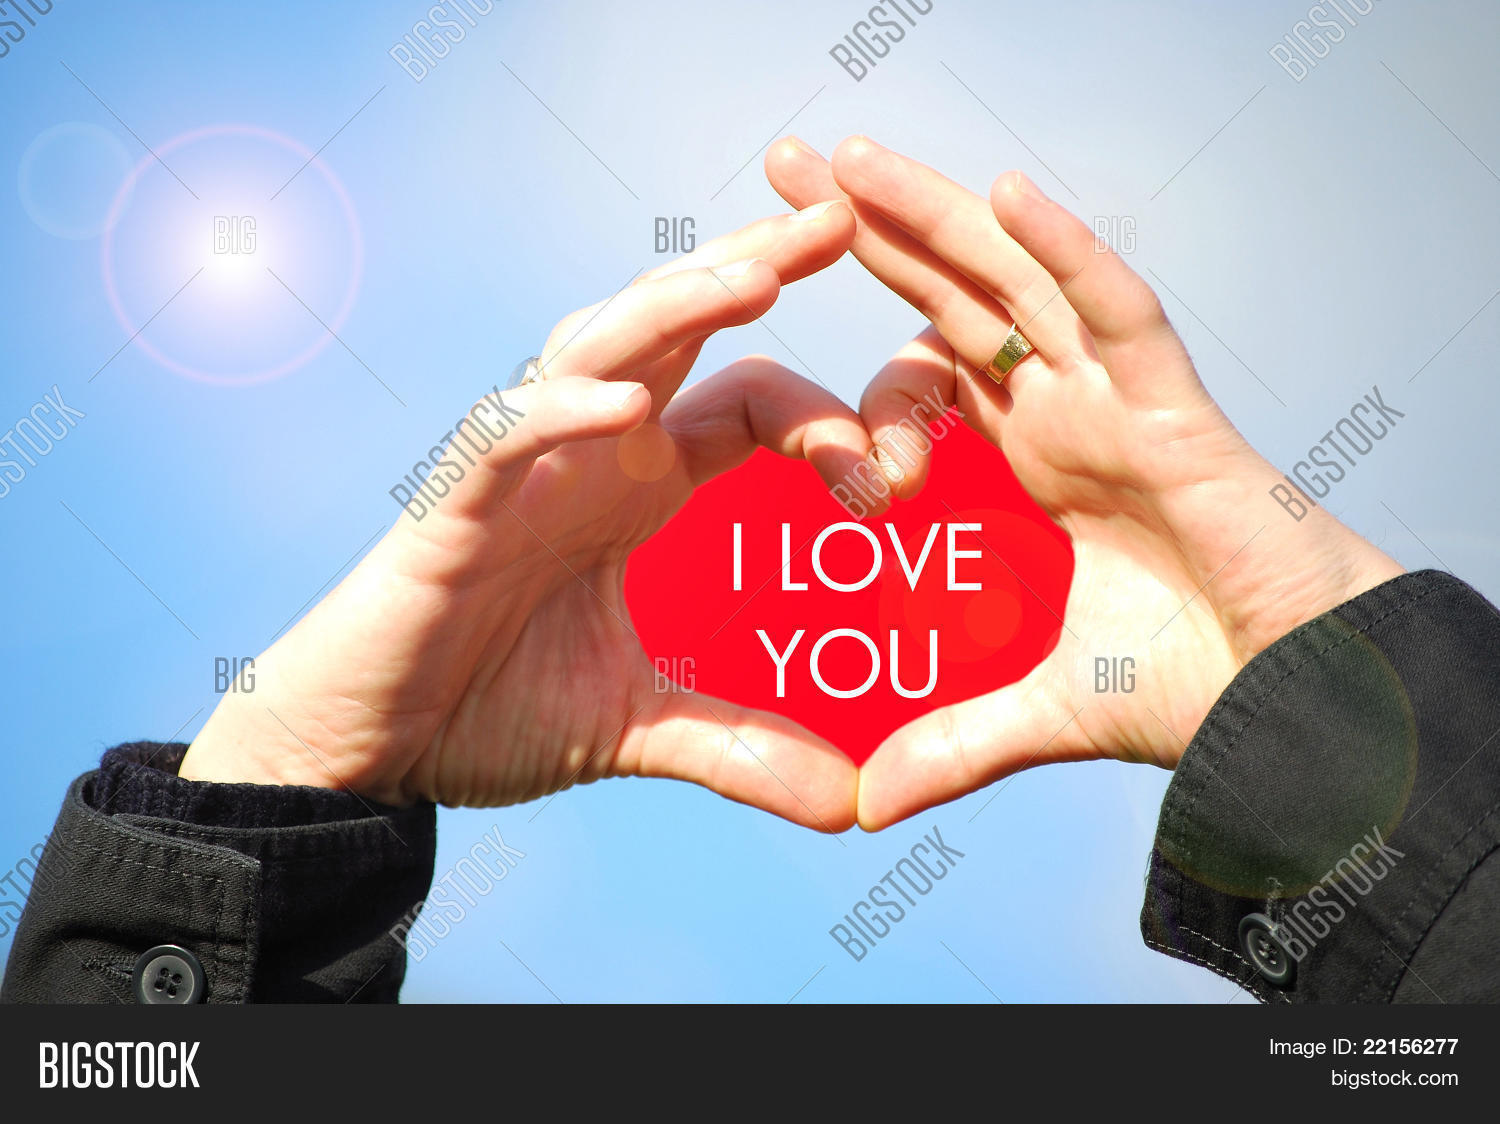 air,beautiful,blue,card,coat,concept,couple,couple holding hands,deaf,disability,disabled,express,expression,feeling,fill,filled,finger,full,gay,gay couple,hand,heart,hearted,help,hold,holding,holding hands,idea,imagination,language,light,love,lovely,lover,marriage,married,mate,matrimonial,message,red,relation,relationship,romance,romantic,s,sign,sky,skylight,soul,soulmate,summer,sun,sunlight,support,unique,valentine,warm,you